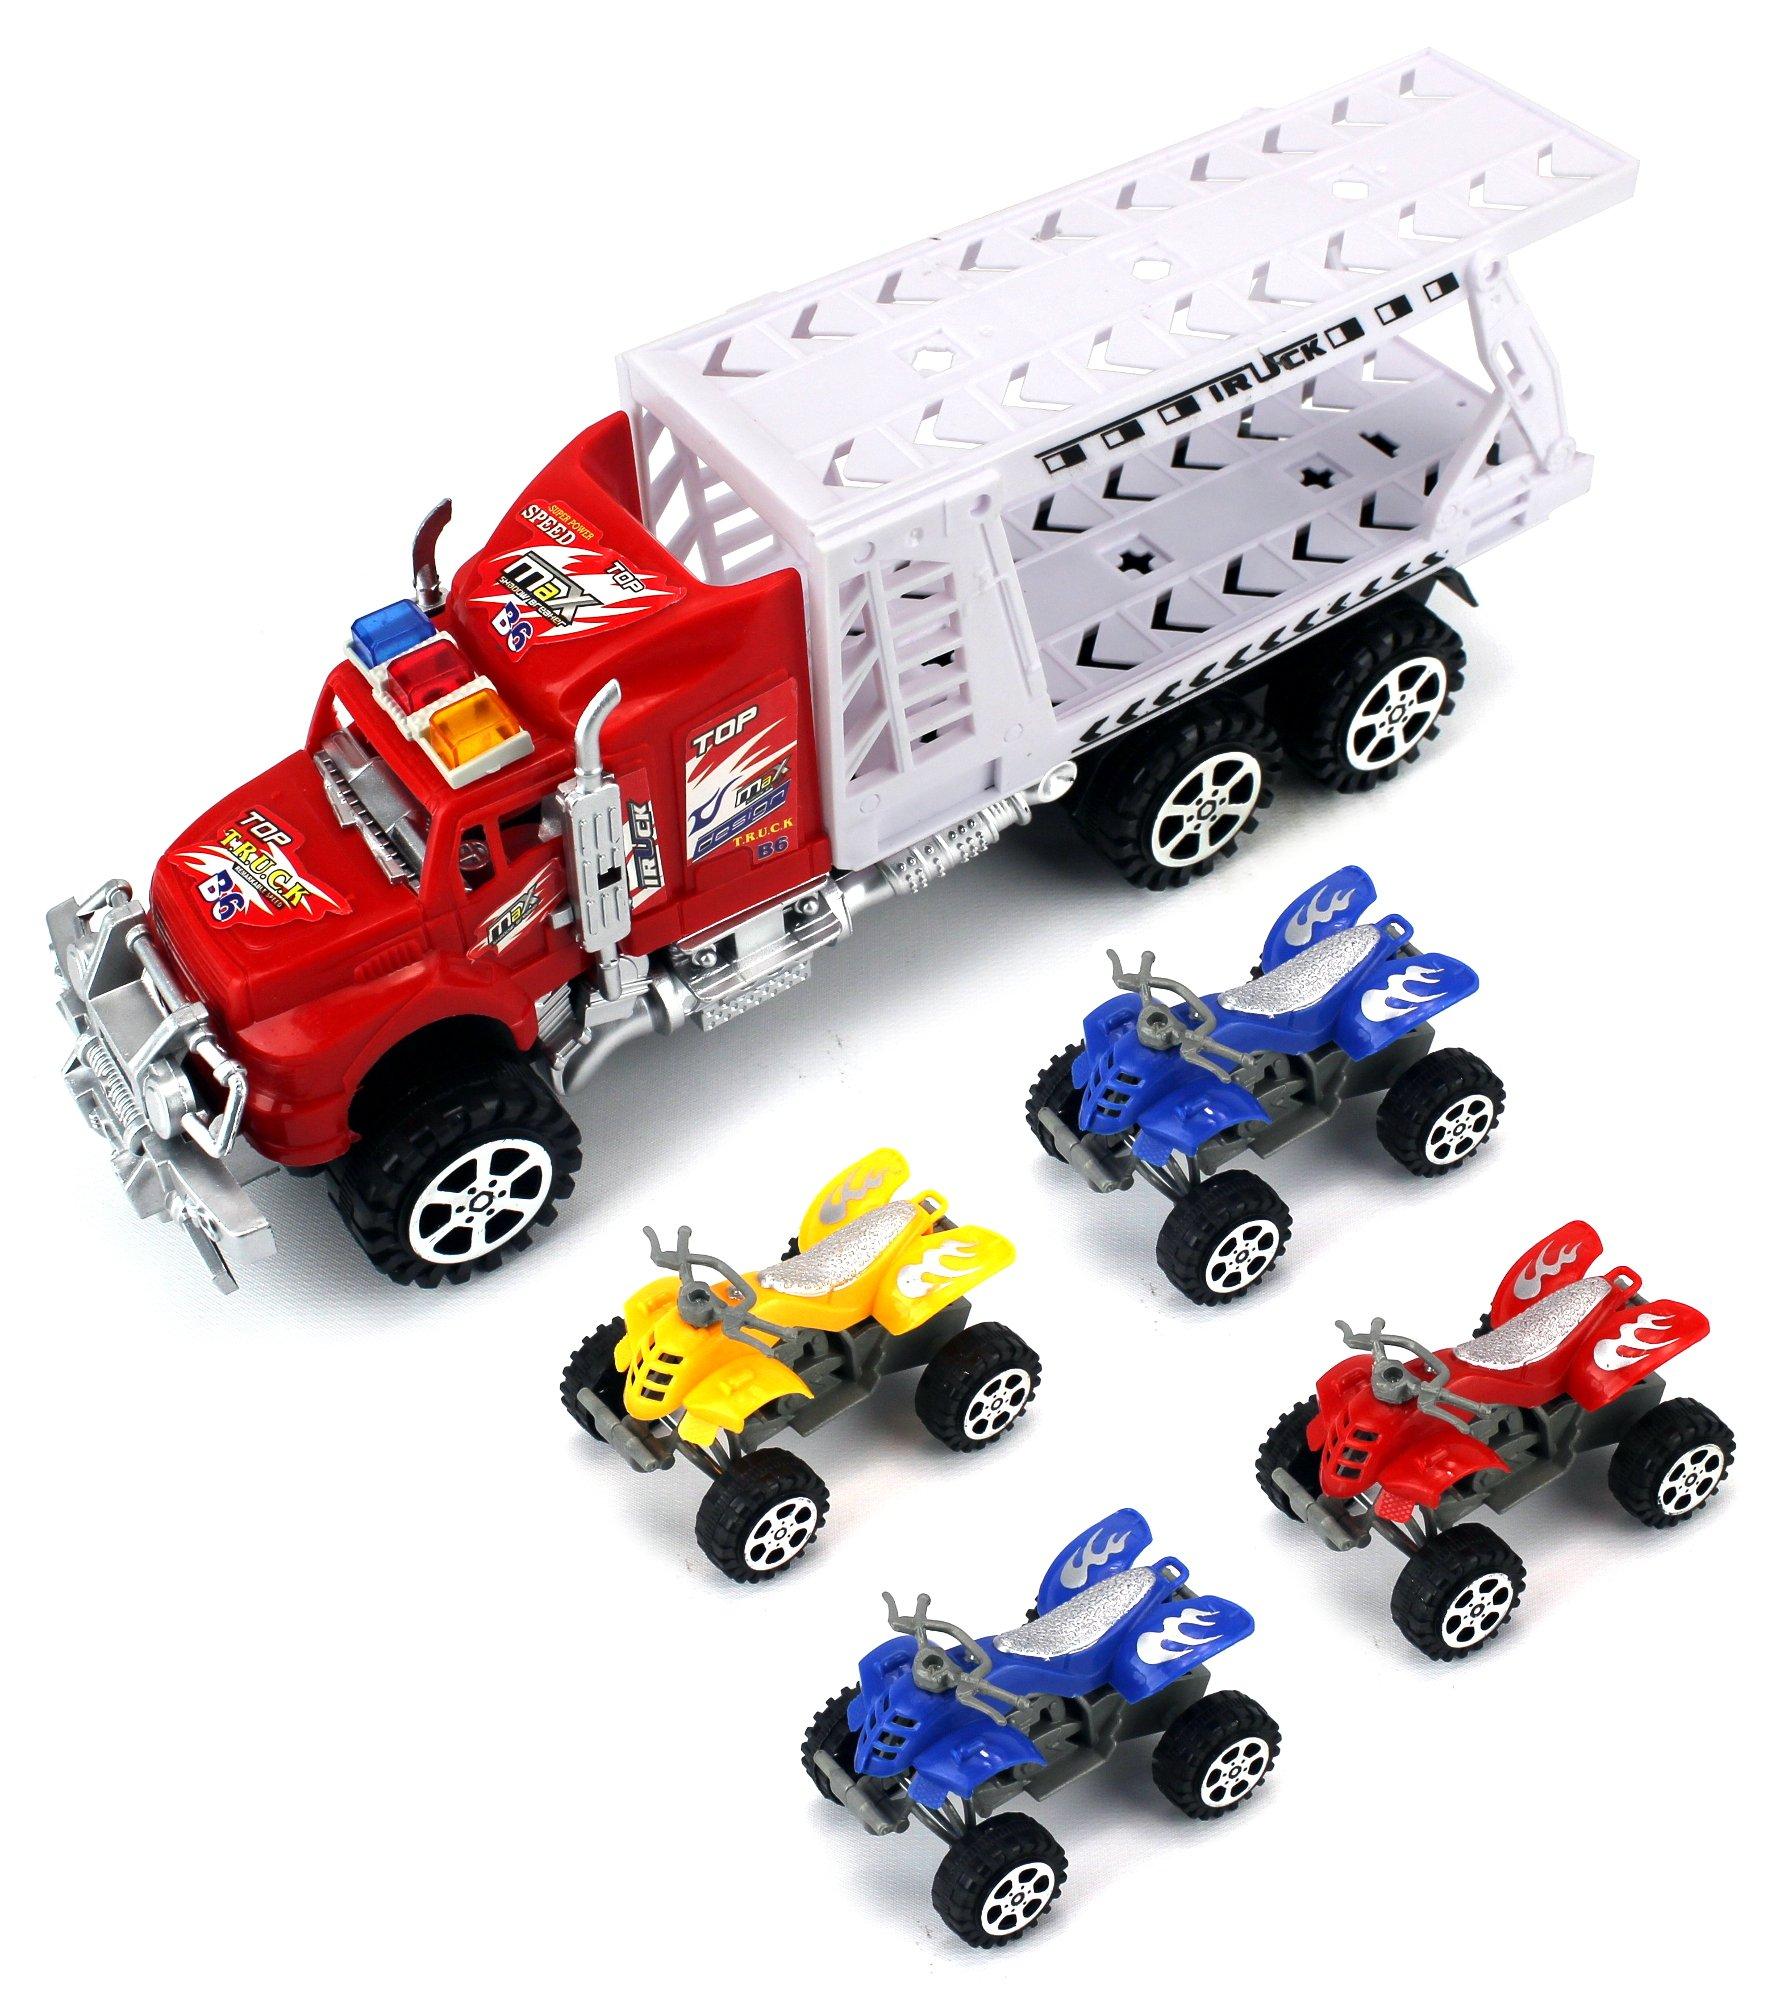 ATV Transporter Trailer Children's Friction Toy Truck Ready To Run w/ 4 Toy ATVs, No Batteries Required (Colors May Vary)